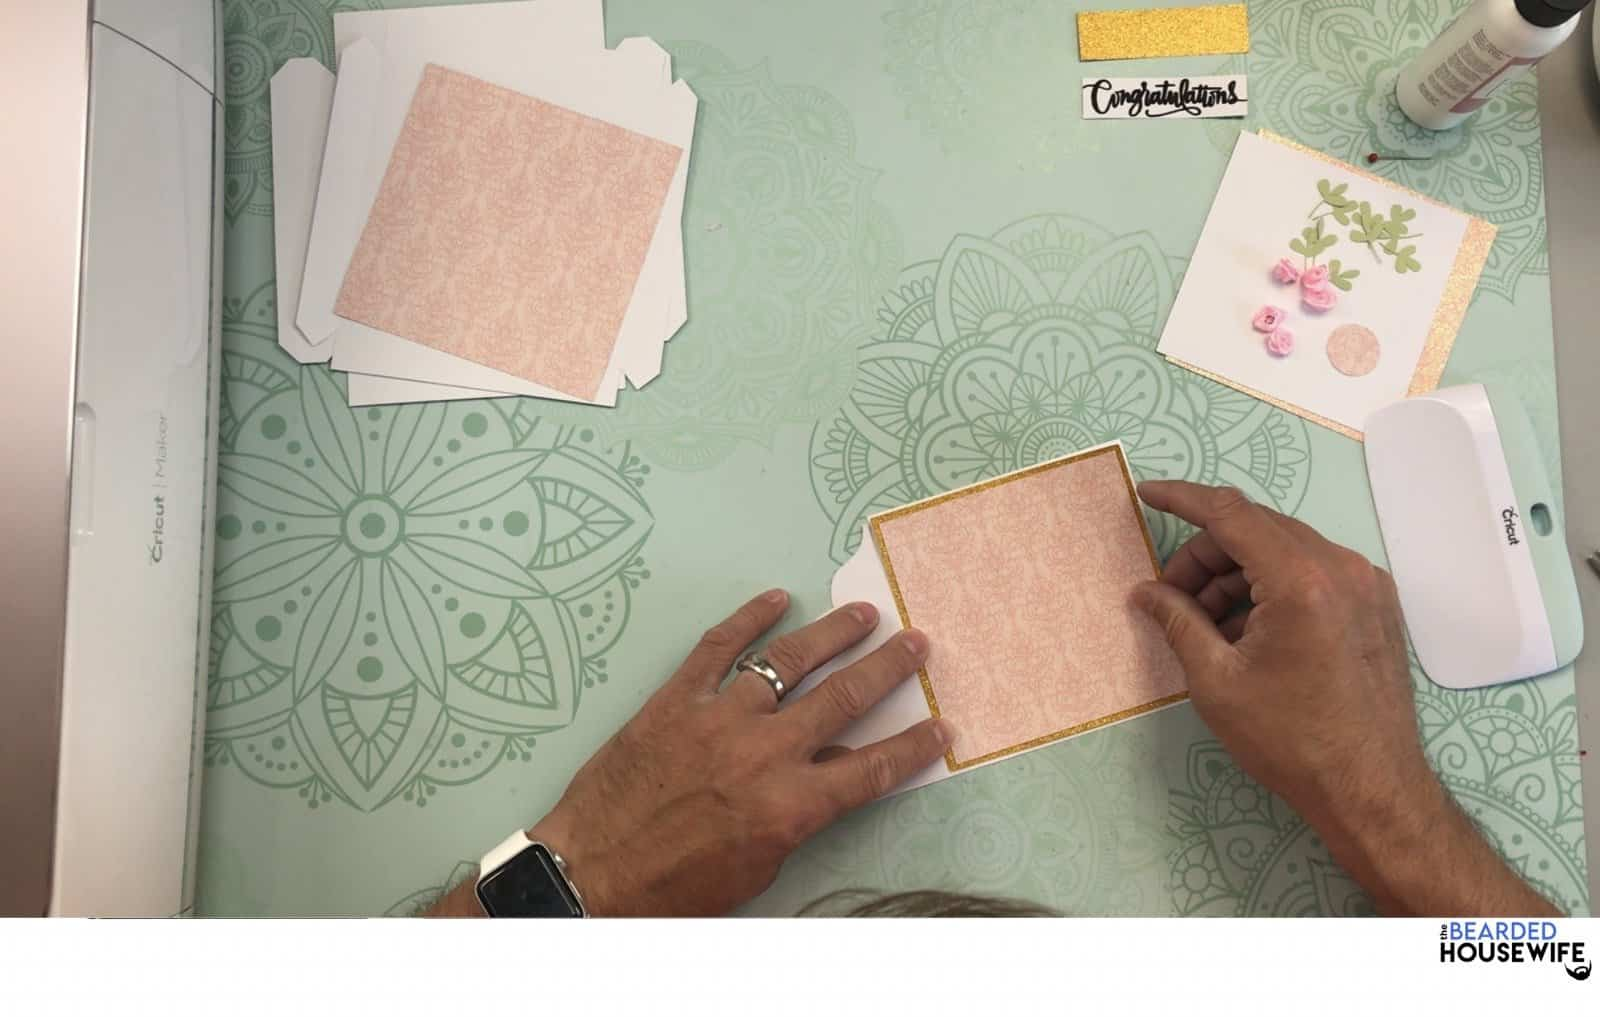 add to the inside of the card